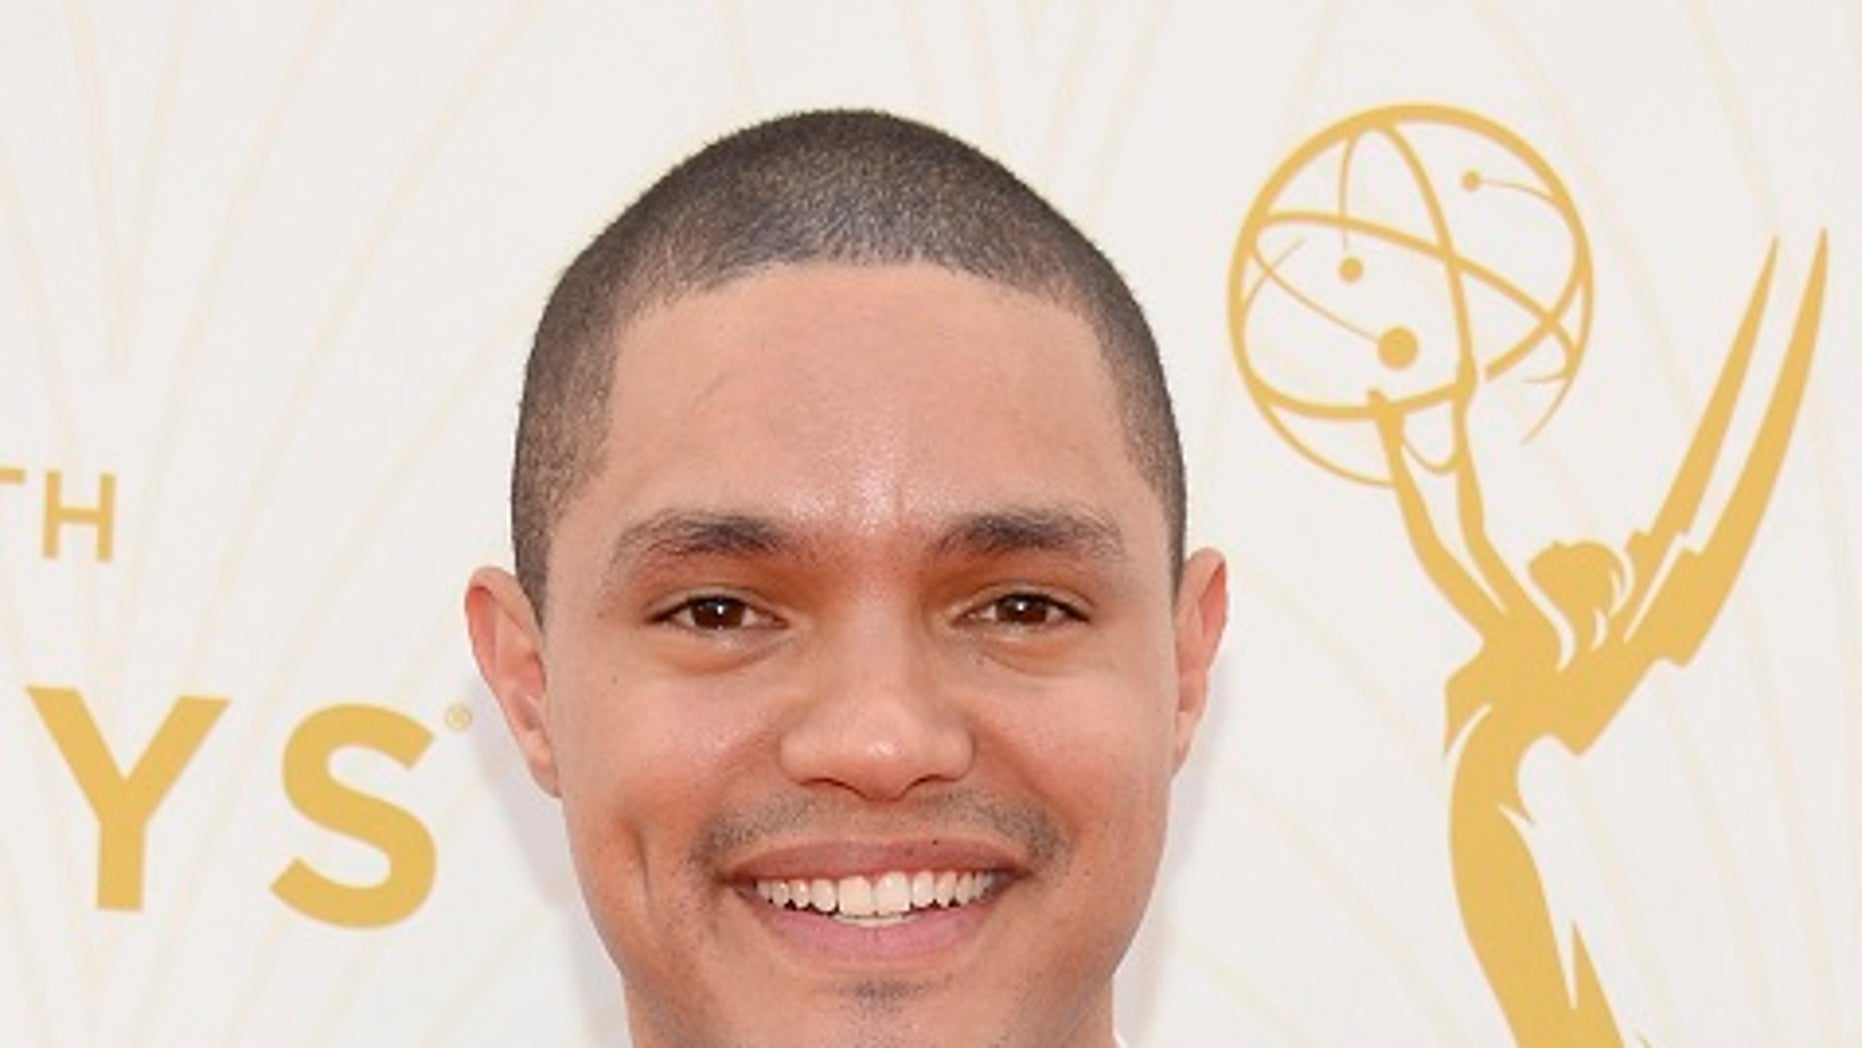 Trevor Noah questioned President Trump's health following news of his physical exam results.